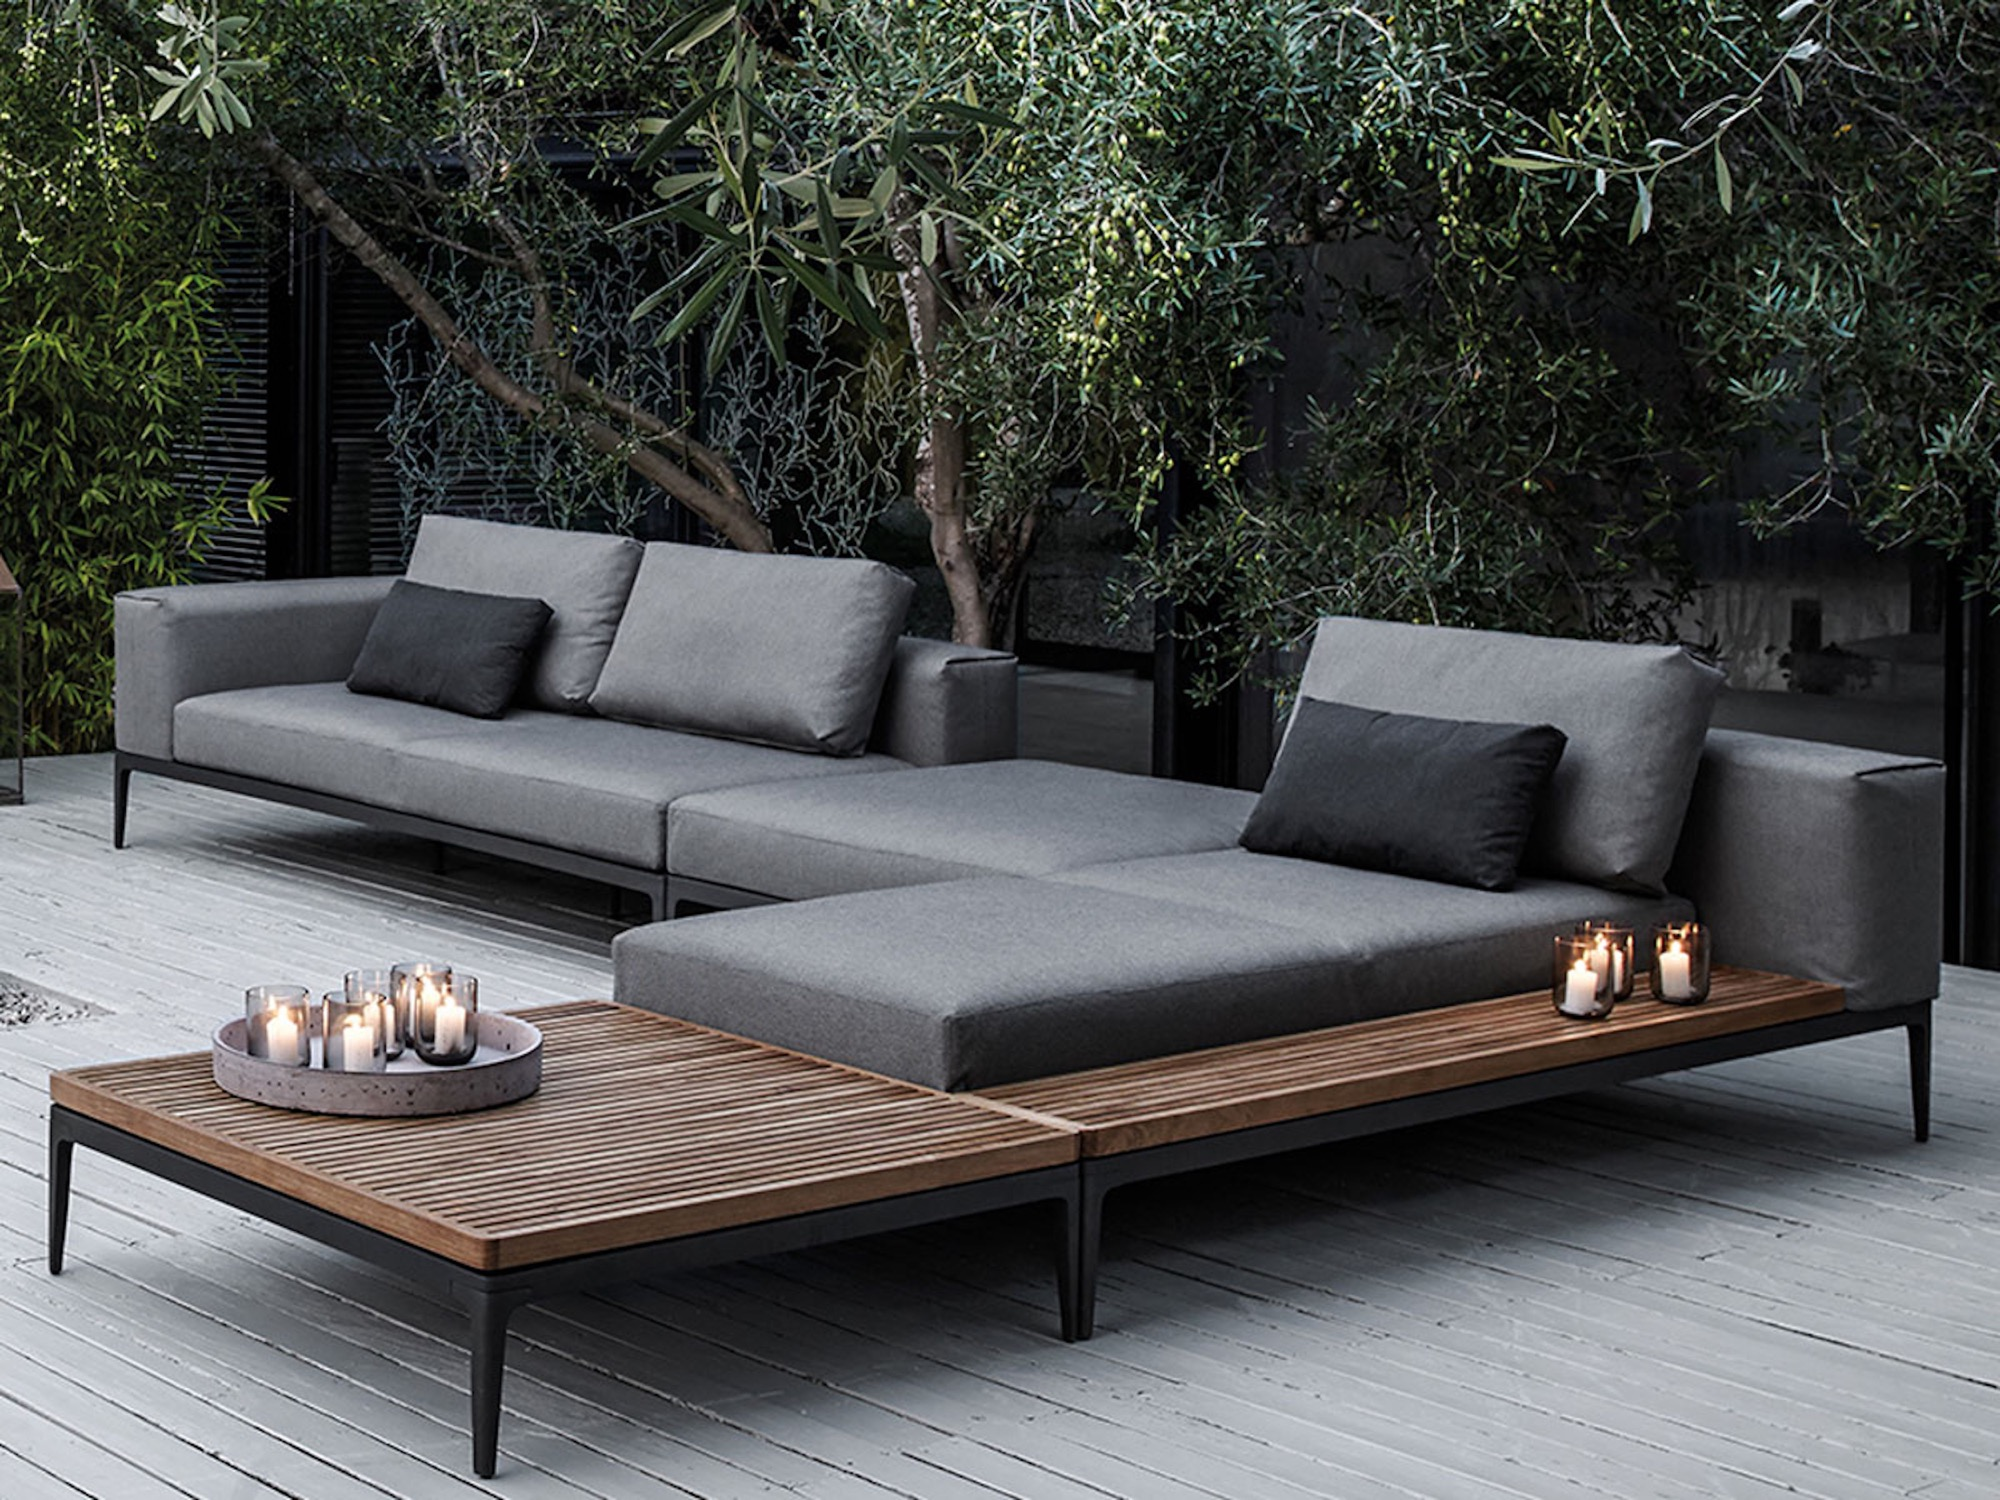 Gentil Patio Furniture: The New Name Of Comfort.